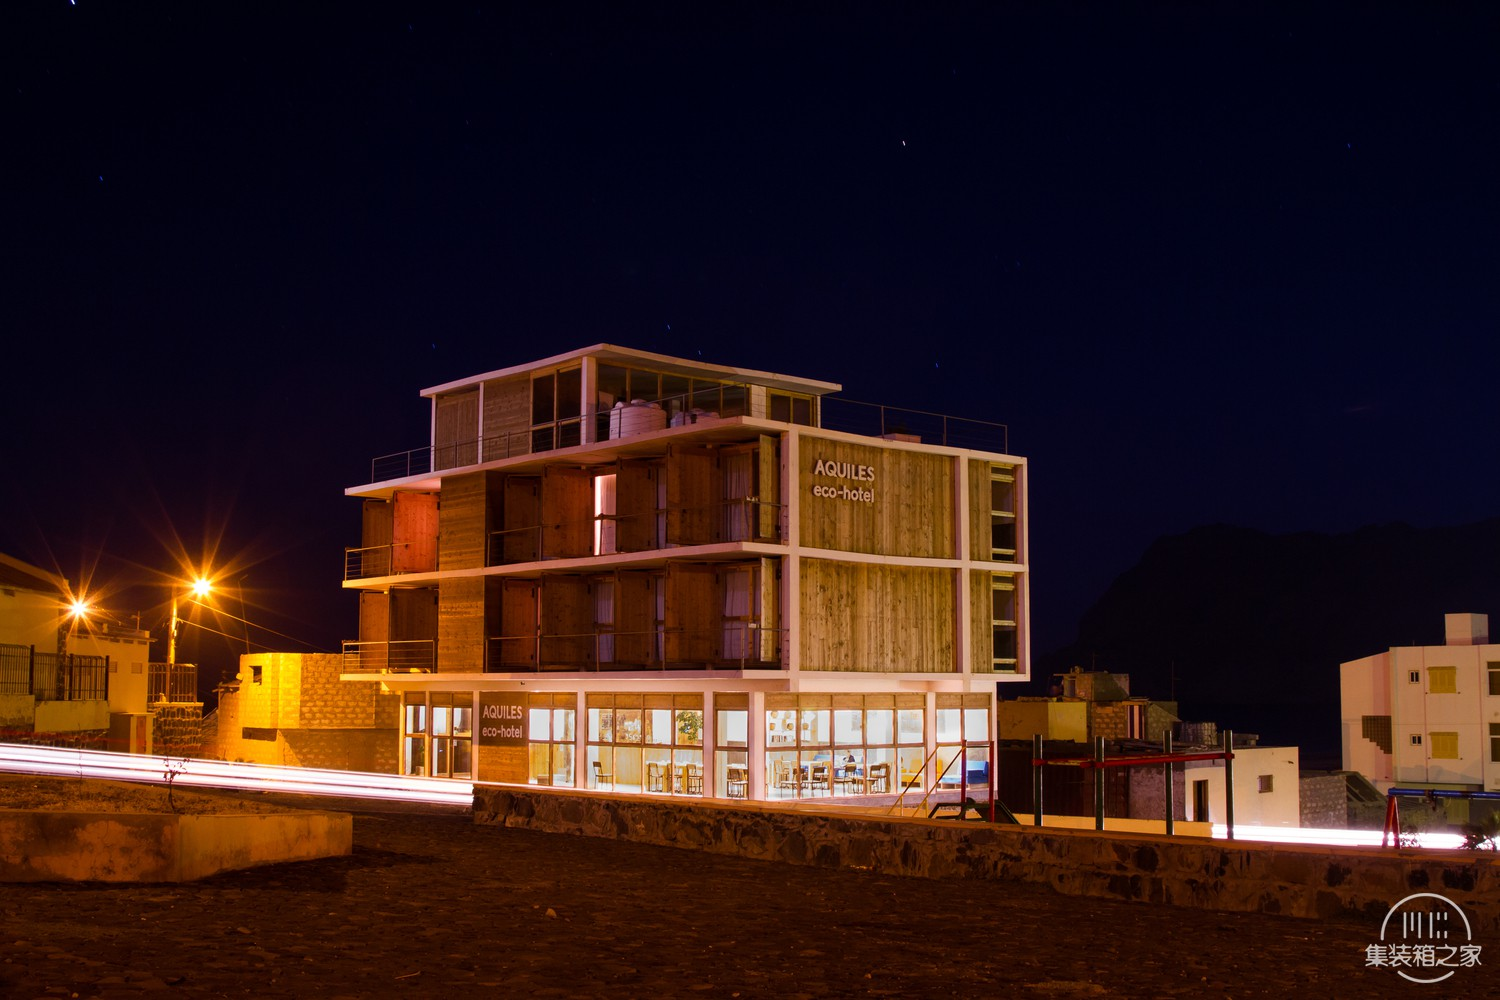 acquiles_eco_hotel_09_Ramos_Castellano_Architects.jpg